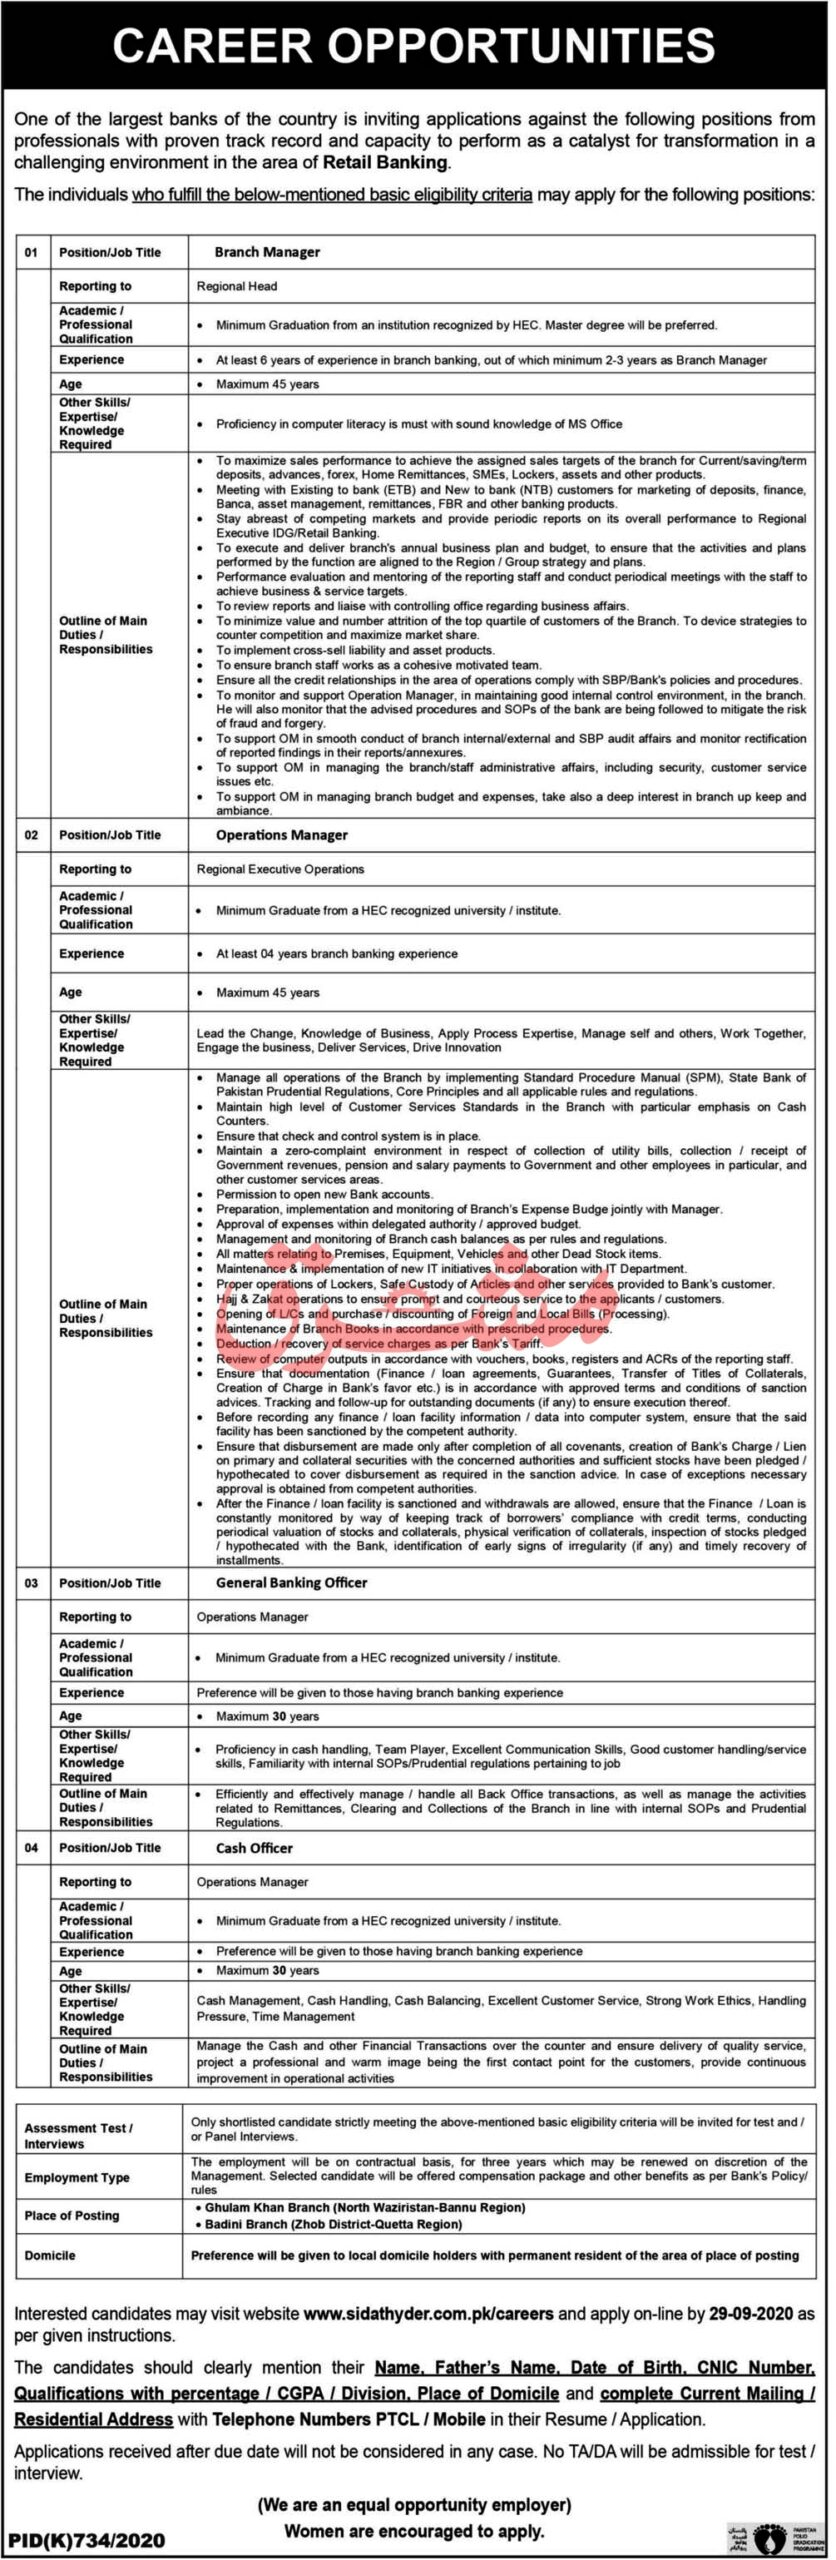 NBP Bank Jobs 2020 for Branch Managers, Operation Managers, Cash Officers and General Banking Manager